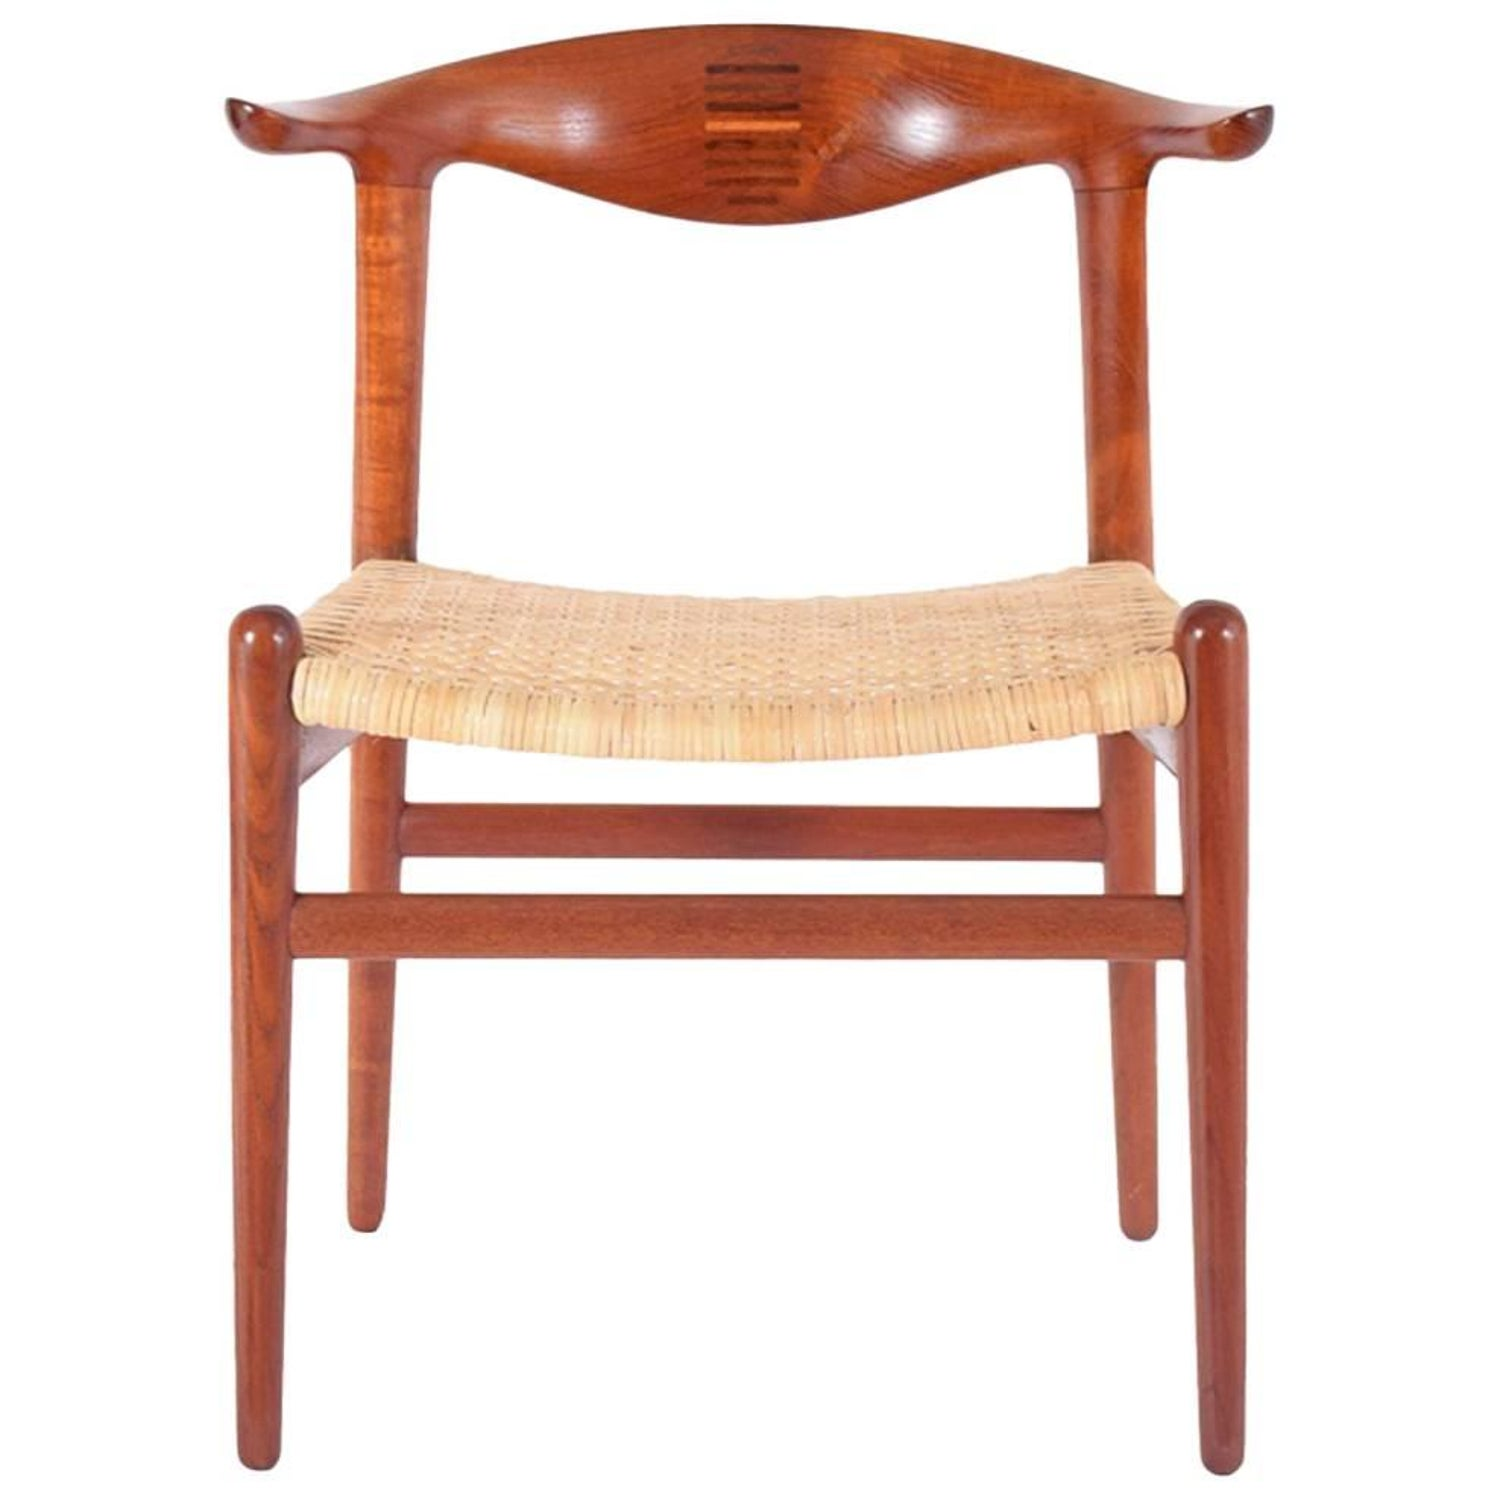 "The ""Round Chair"" by Hans J Wegner at 1stdibs"